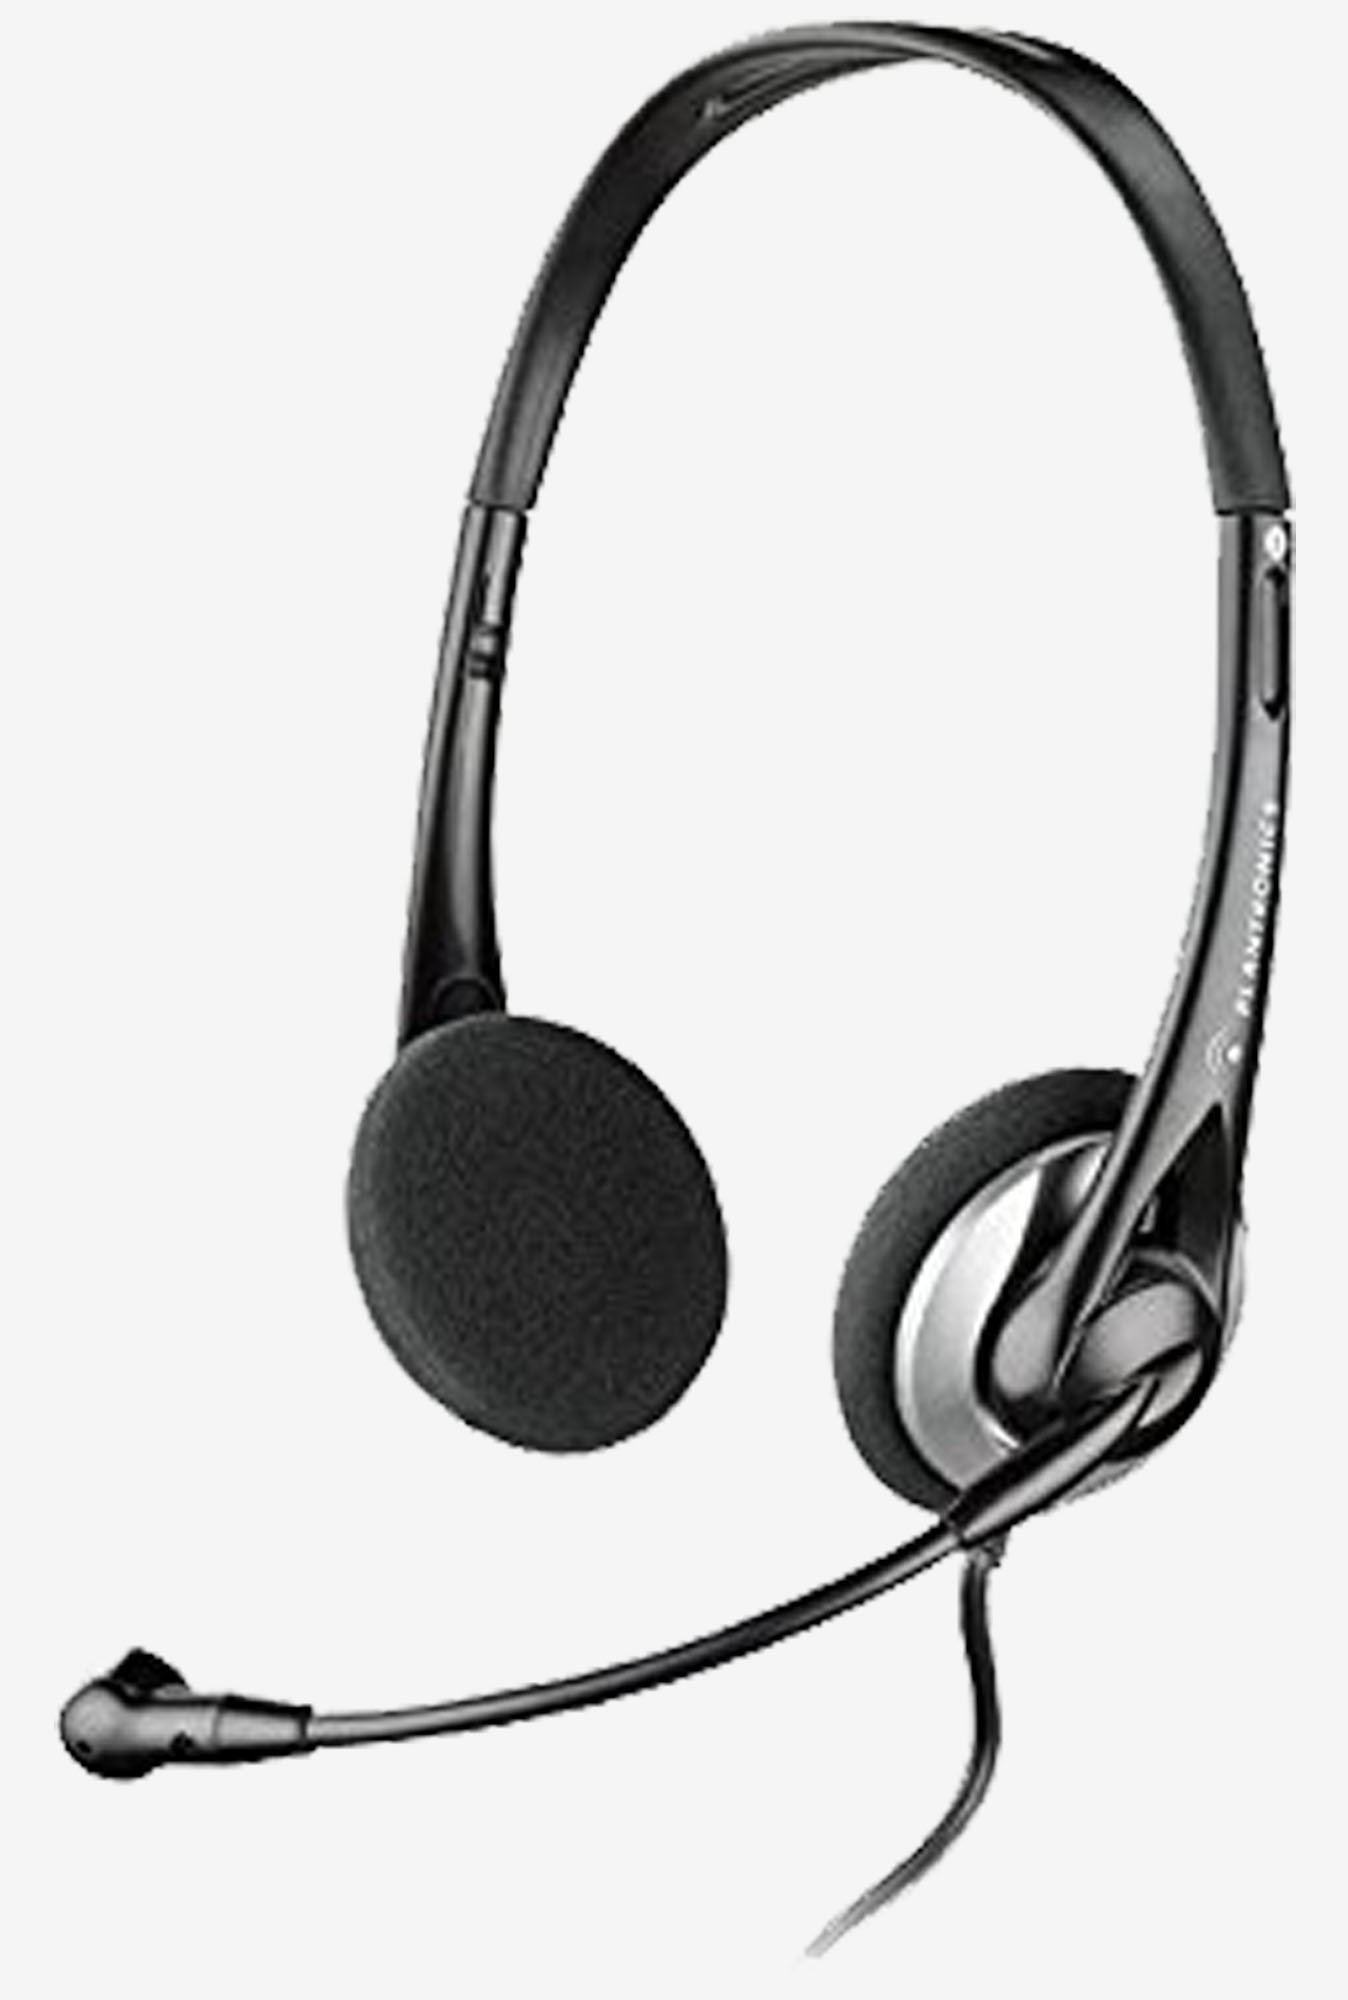 Plantronics Audio 326 Stereo PC Headset (Black)